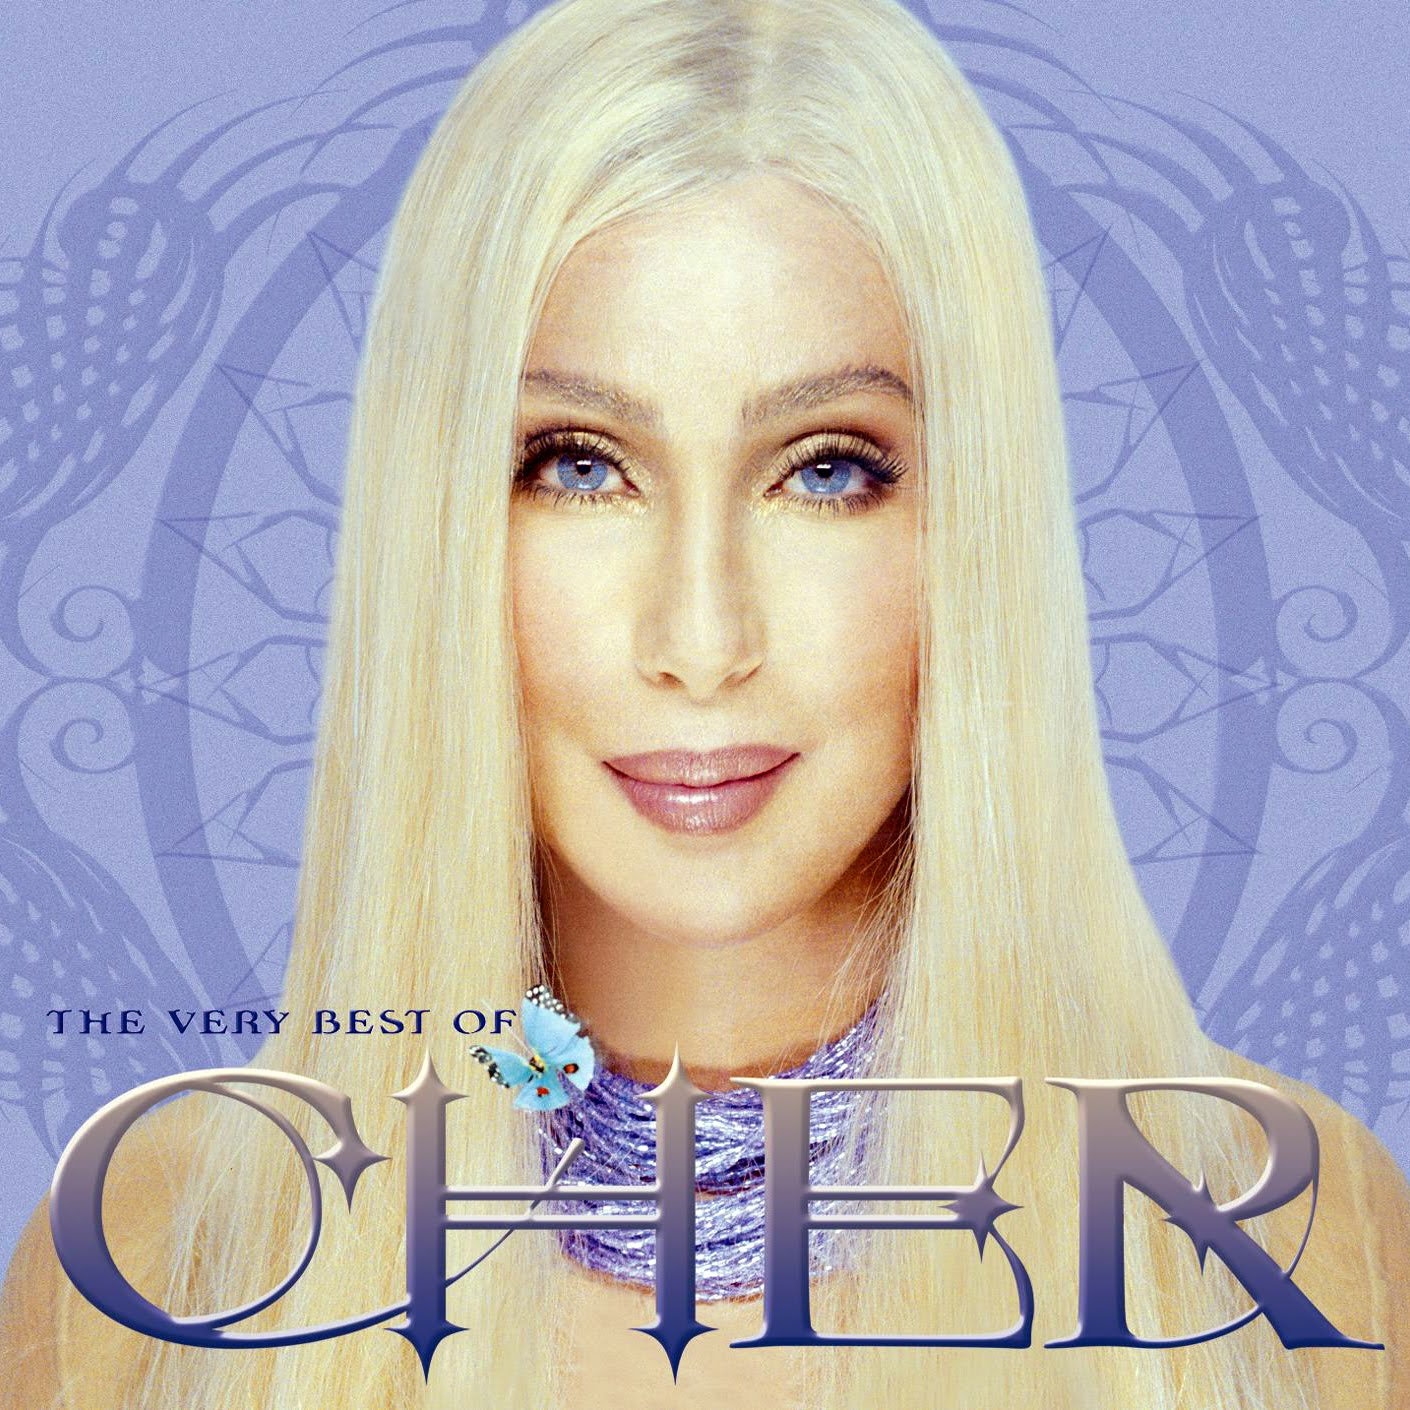 Coverlandia - The #1 Place for Album & Single Cover\'s: Cher - The ...